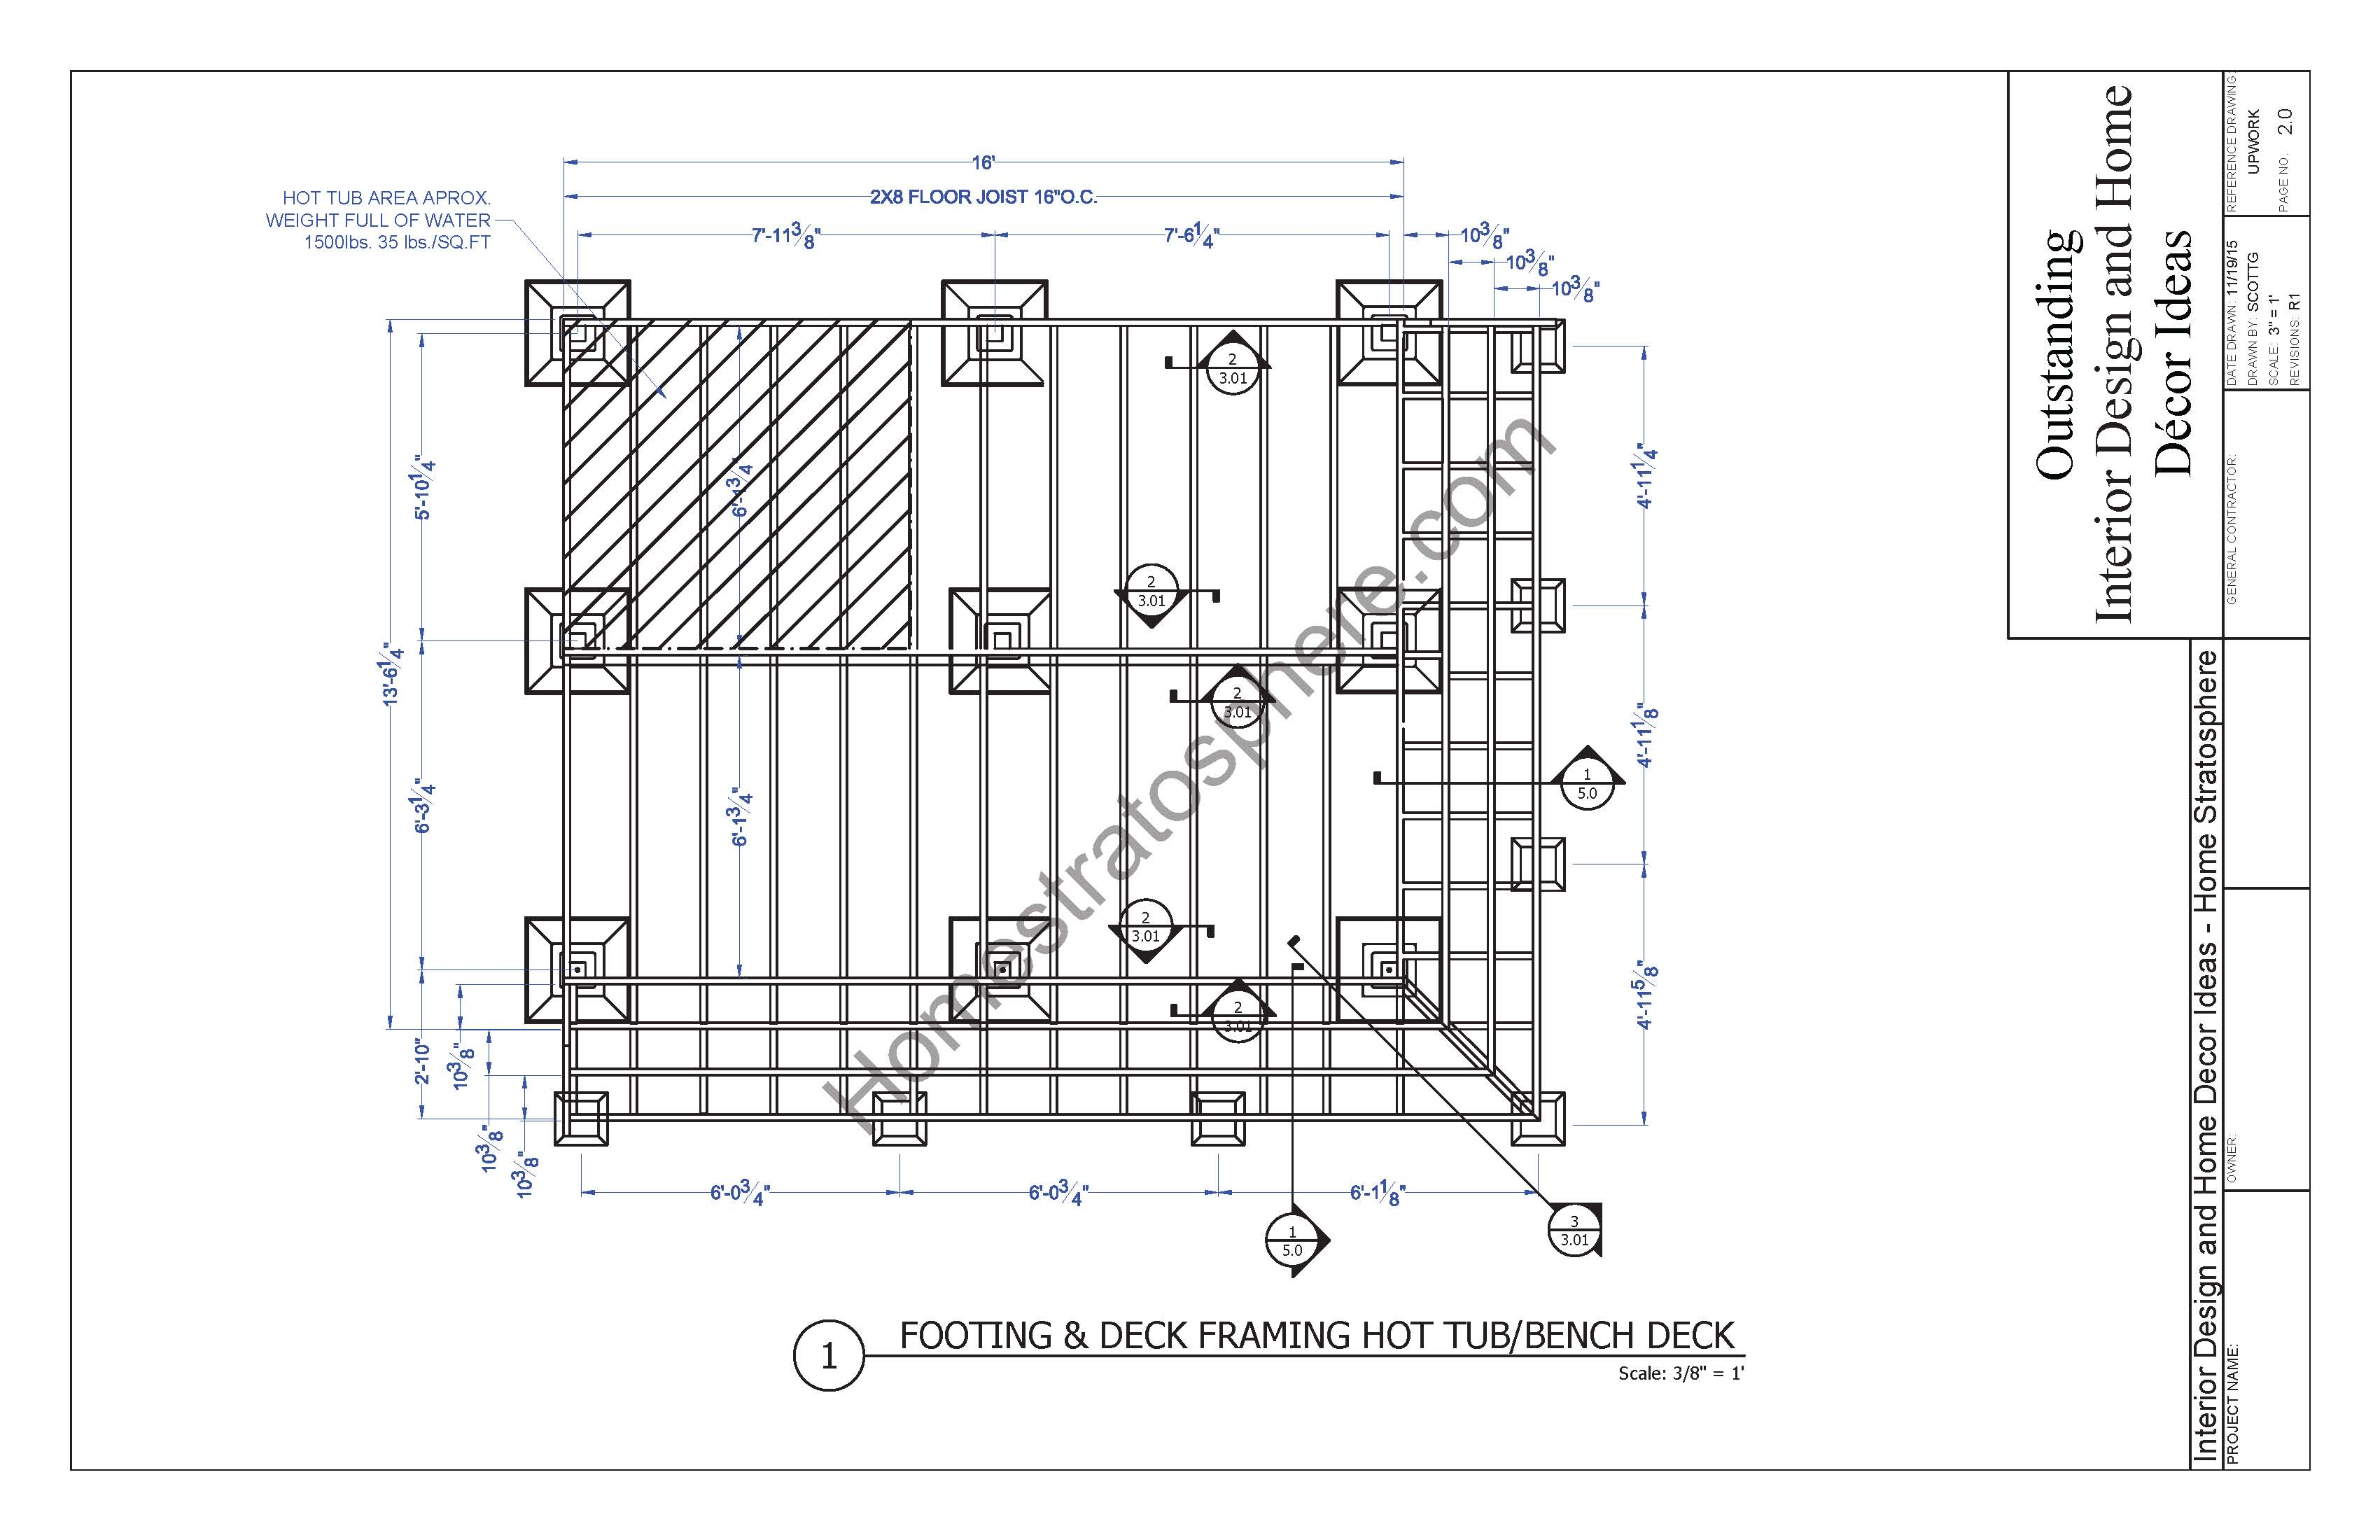 Footings blueprint for deck with hot tub